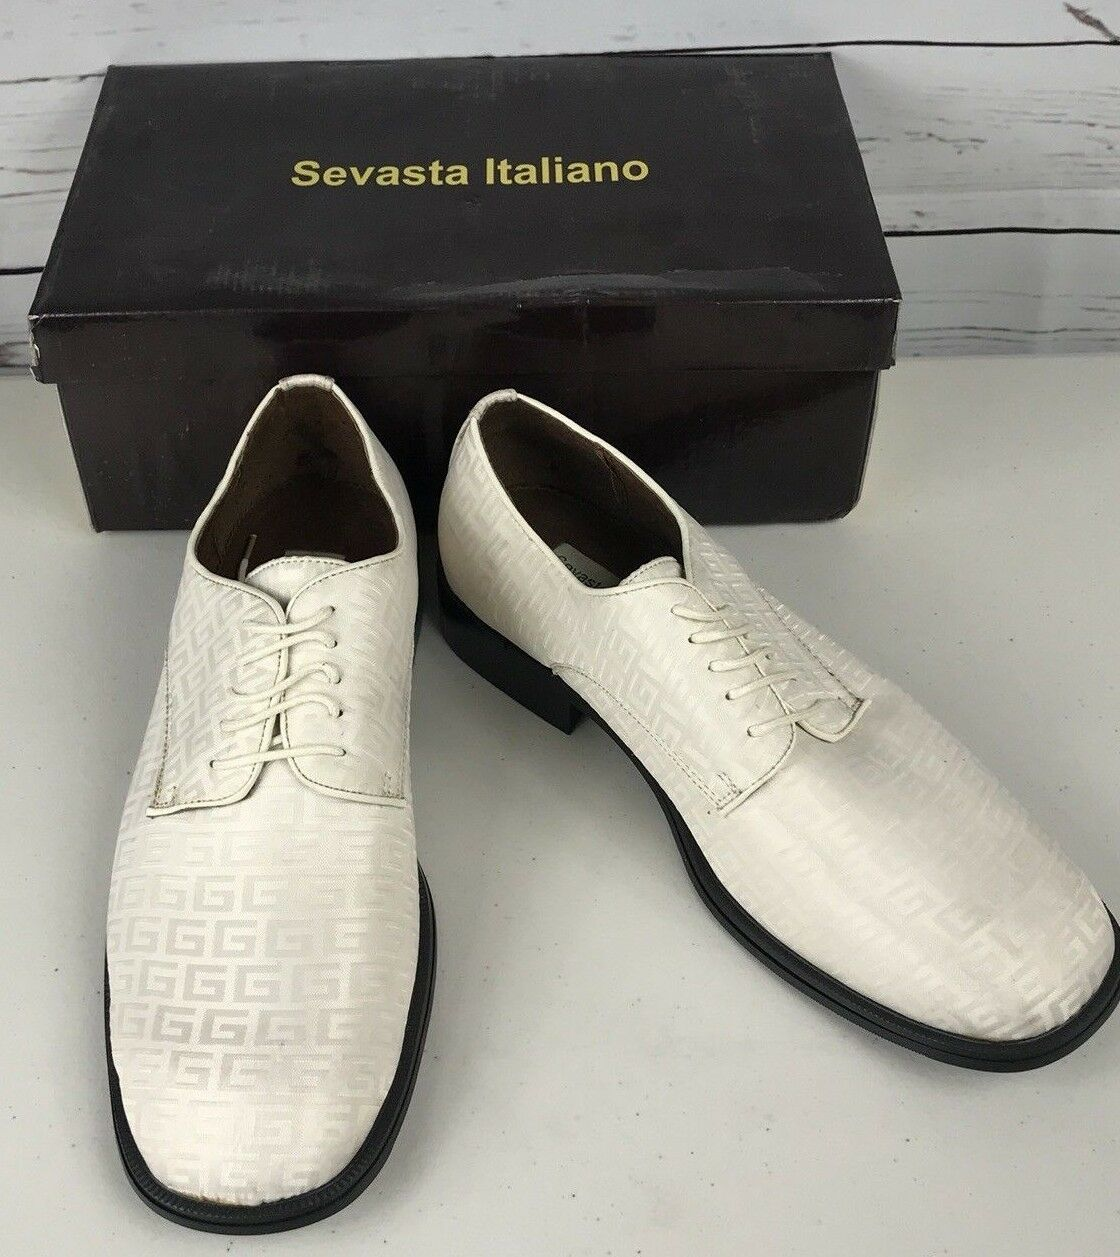 Sevasta Italiano Dress Mens Patent Leather Loafer Dress Italiano Shoe White Bone Size 13 NEW 230bf5